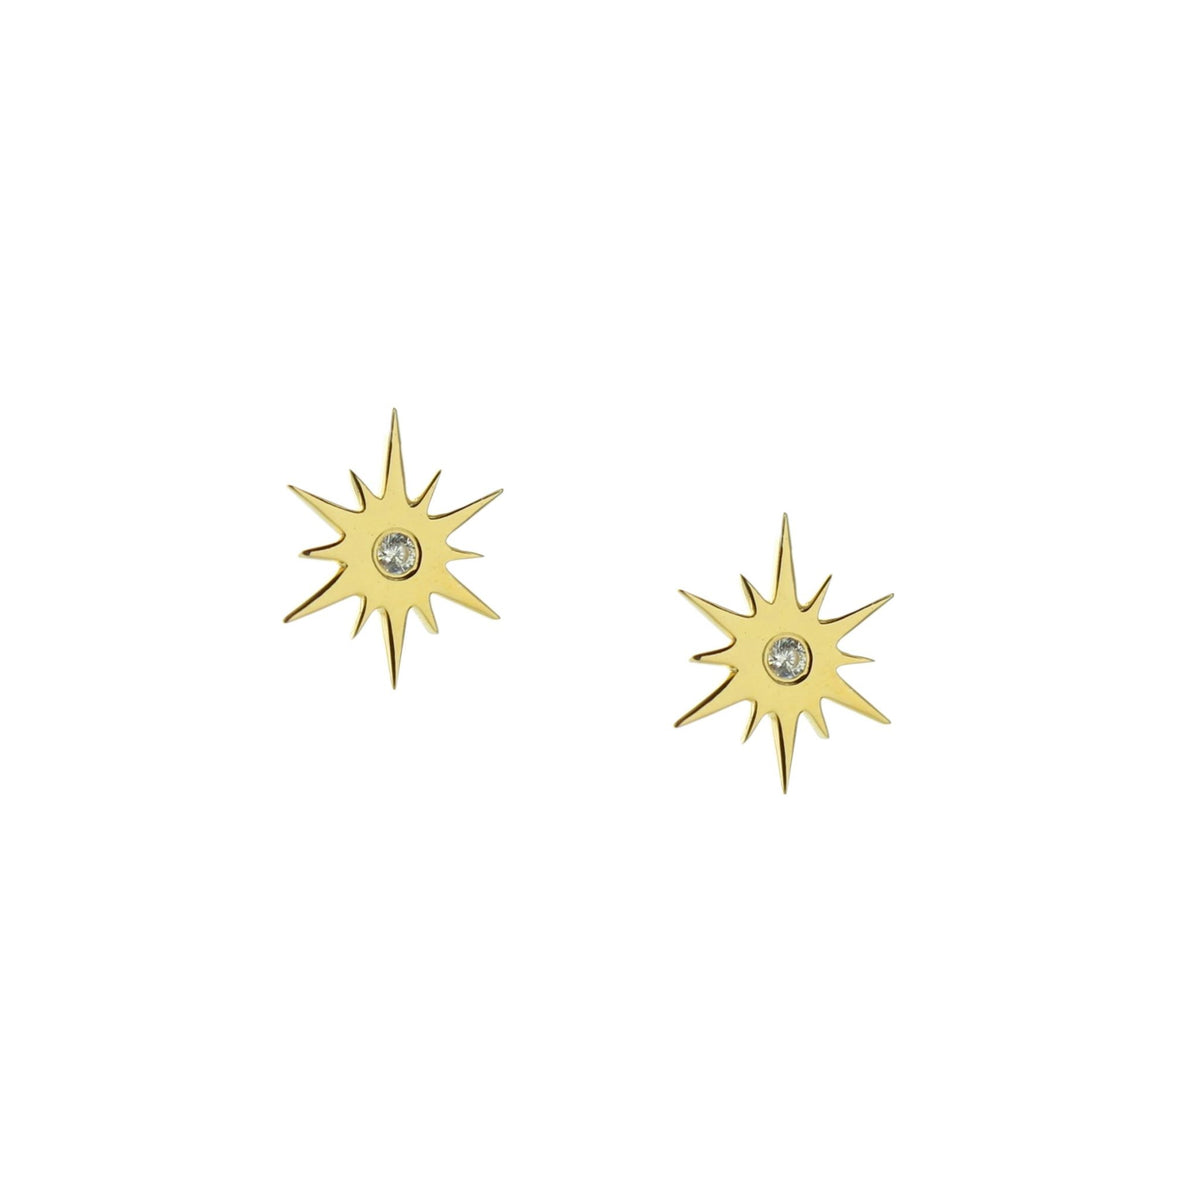 TINY BELIEVE STELLAR STUDS - CUBIC ZIRCONIA, & GOLD - SO PRETTY CARA COTTER